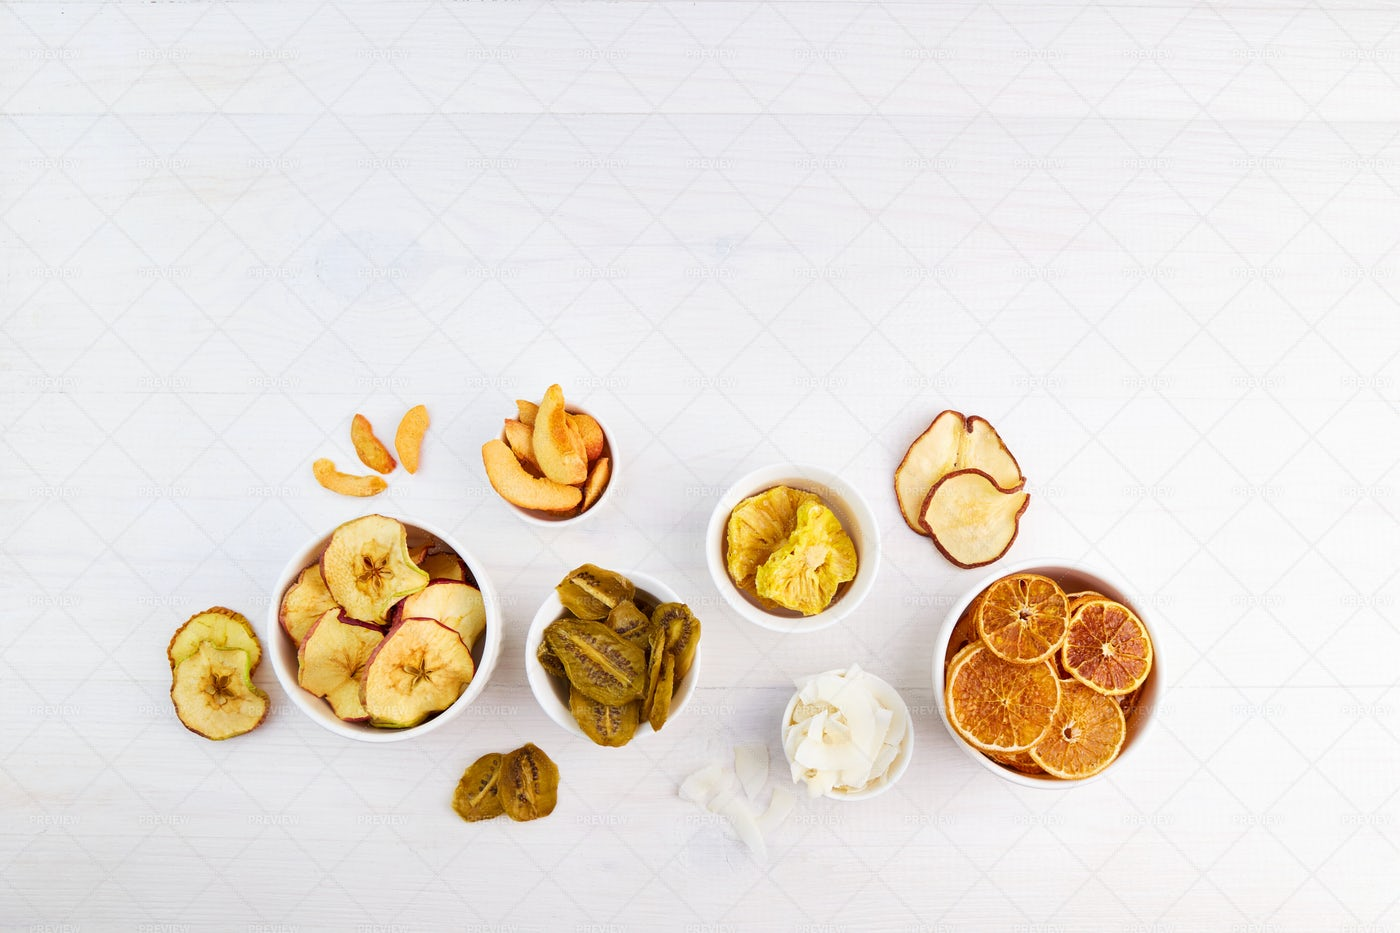 Dried Fruits: Stock Photos